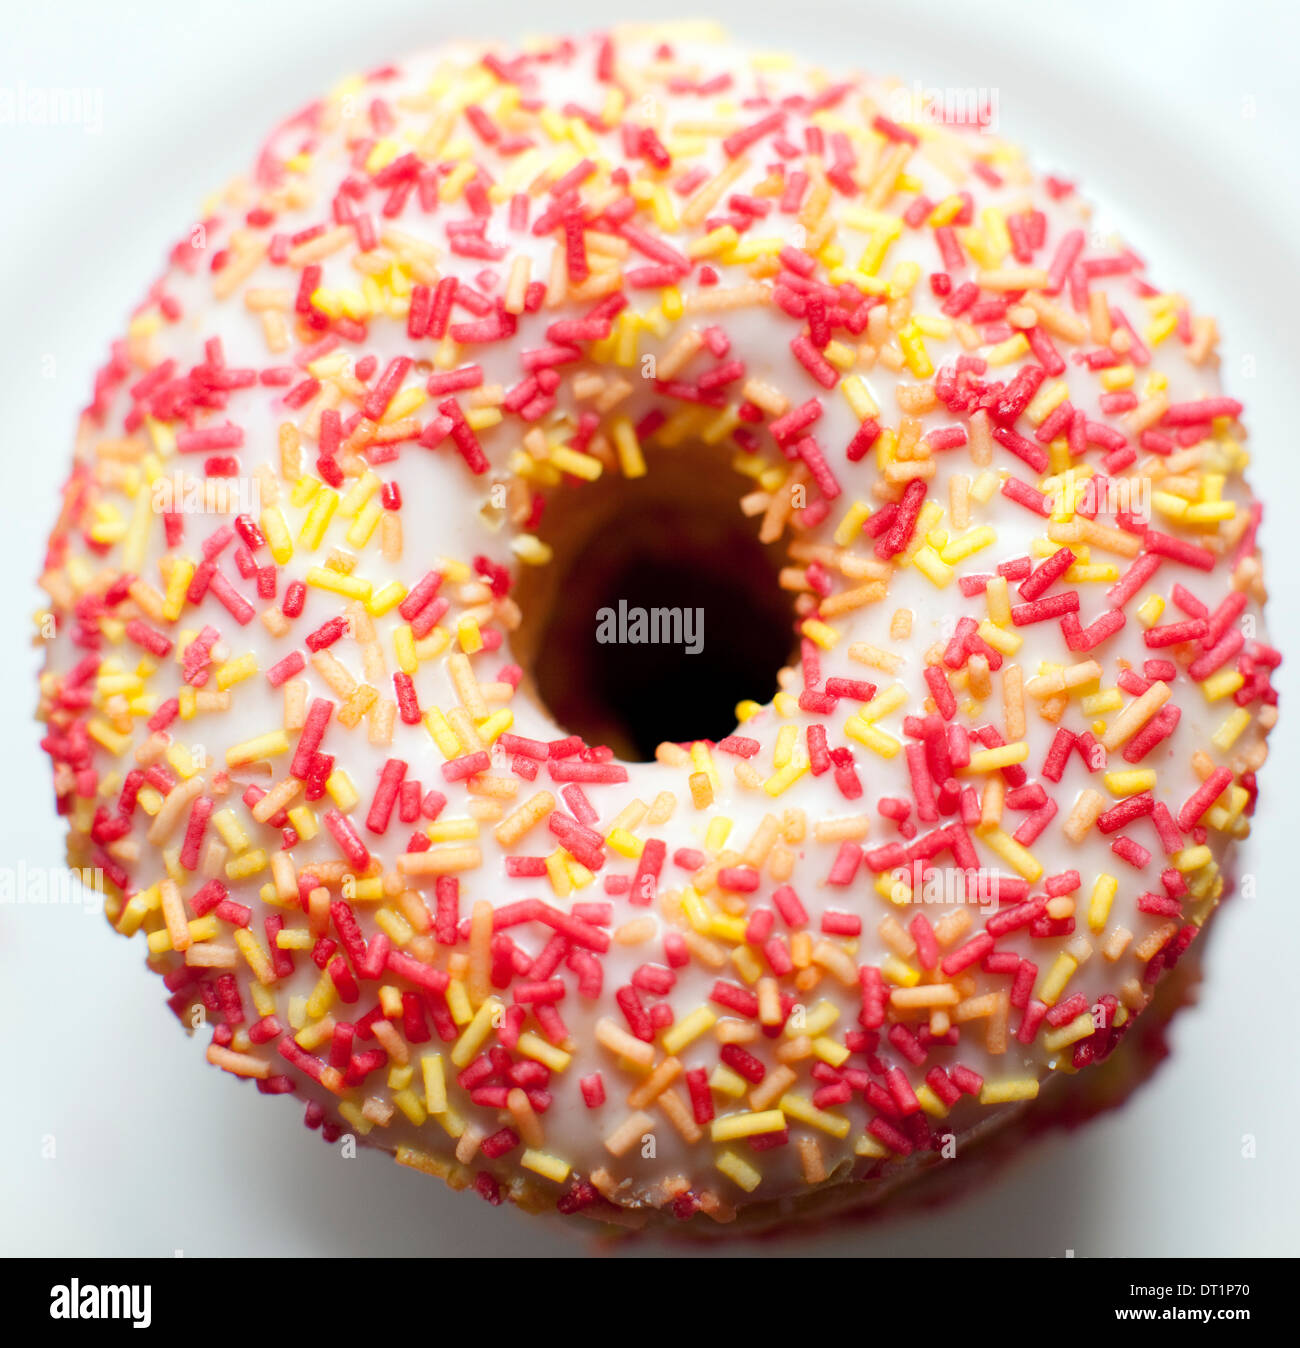 White iced ring donut, London - Stock Image